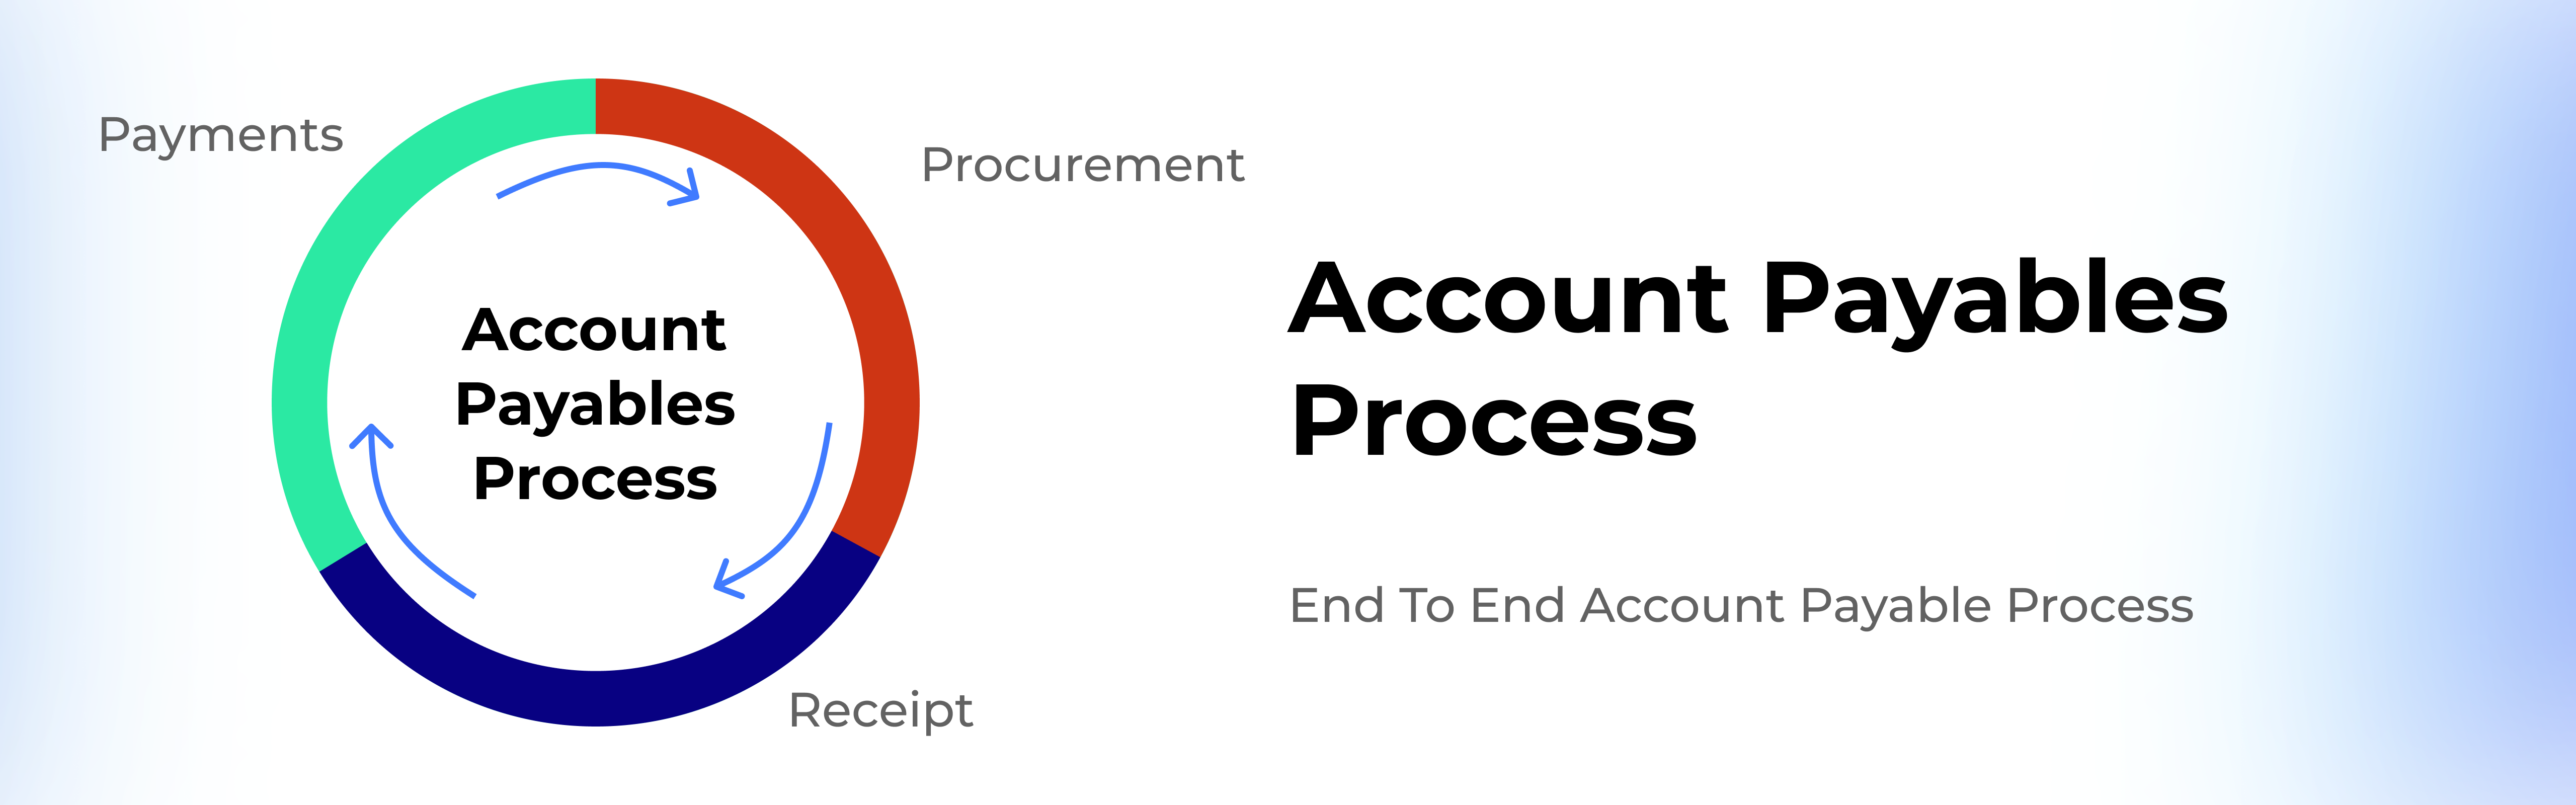 account-payable-process-end-to-end-process-of-ap